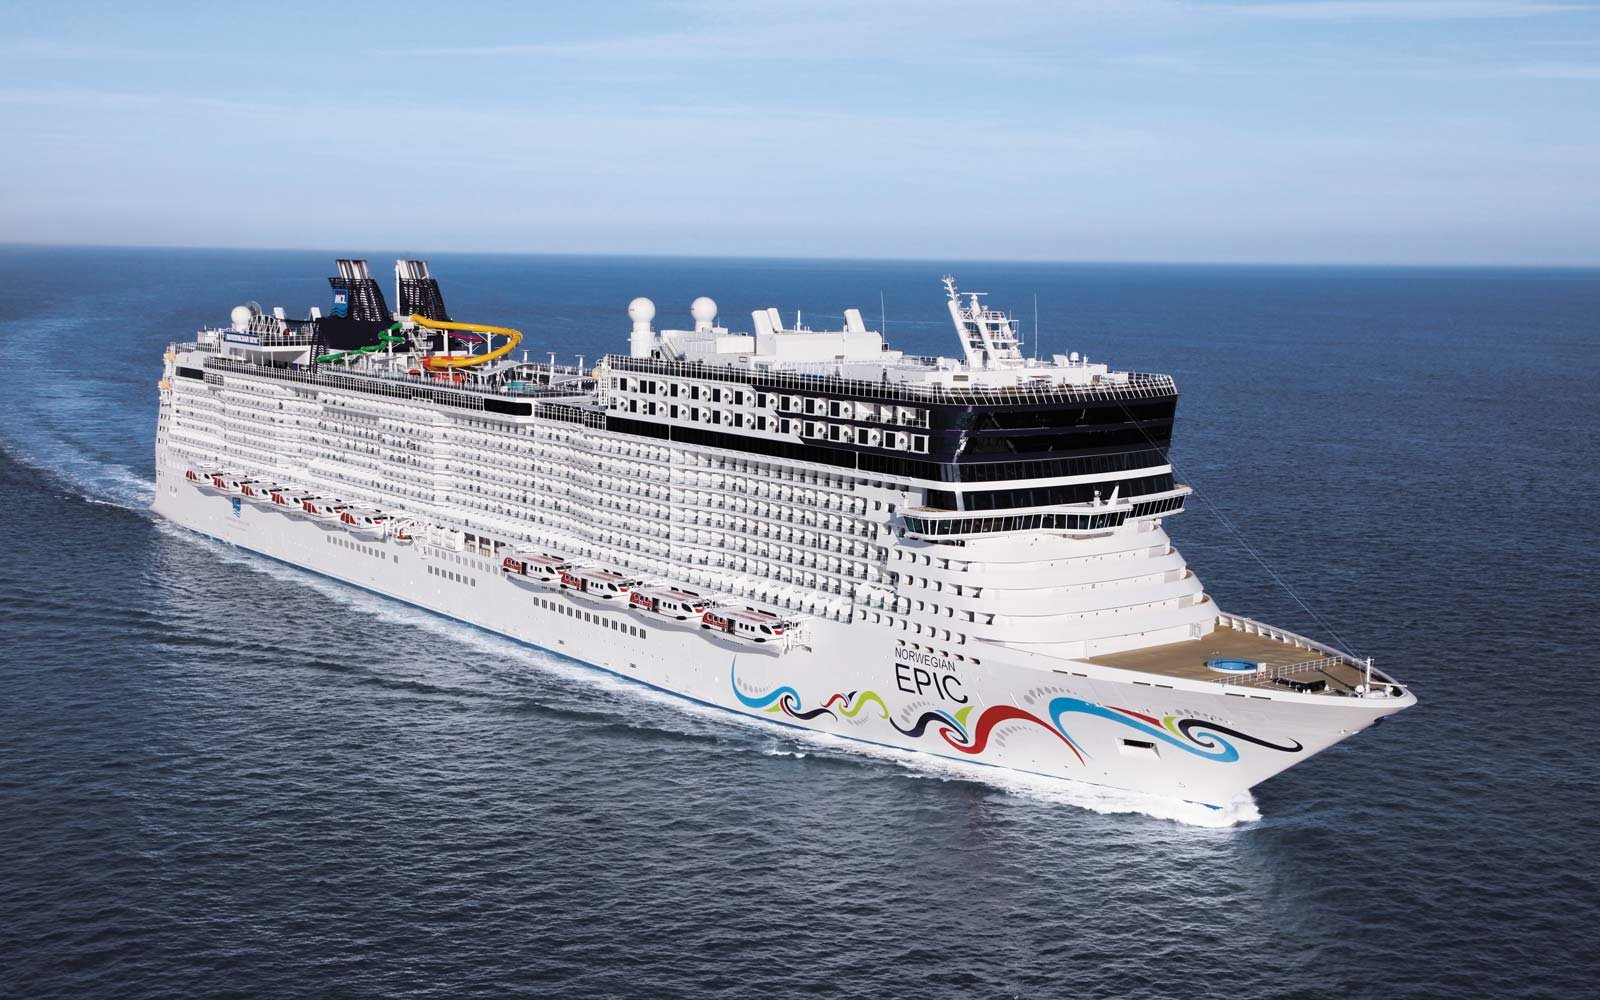 norwegian-epic-aerial-NOREPIC0317